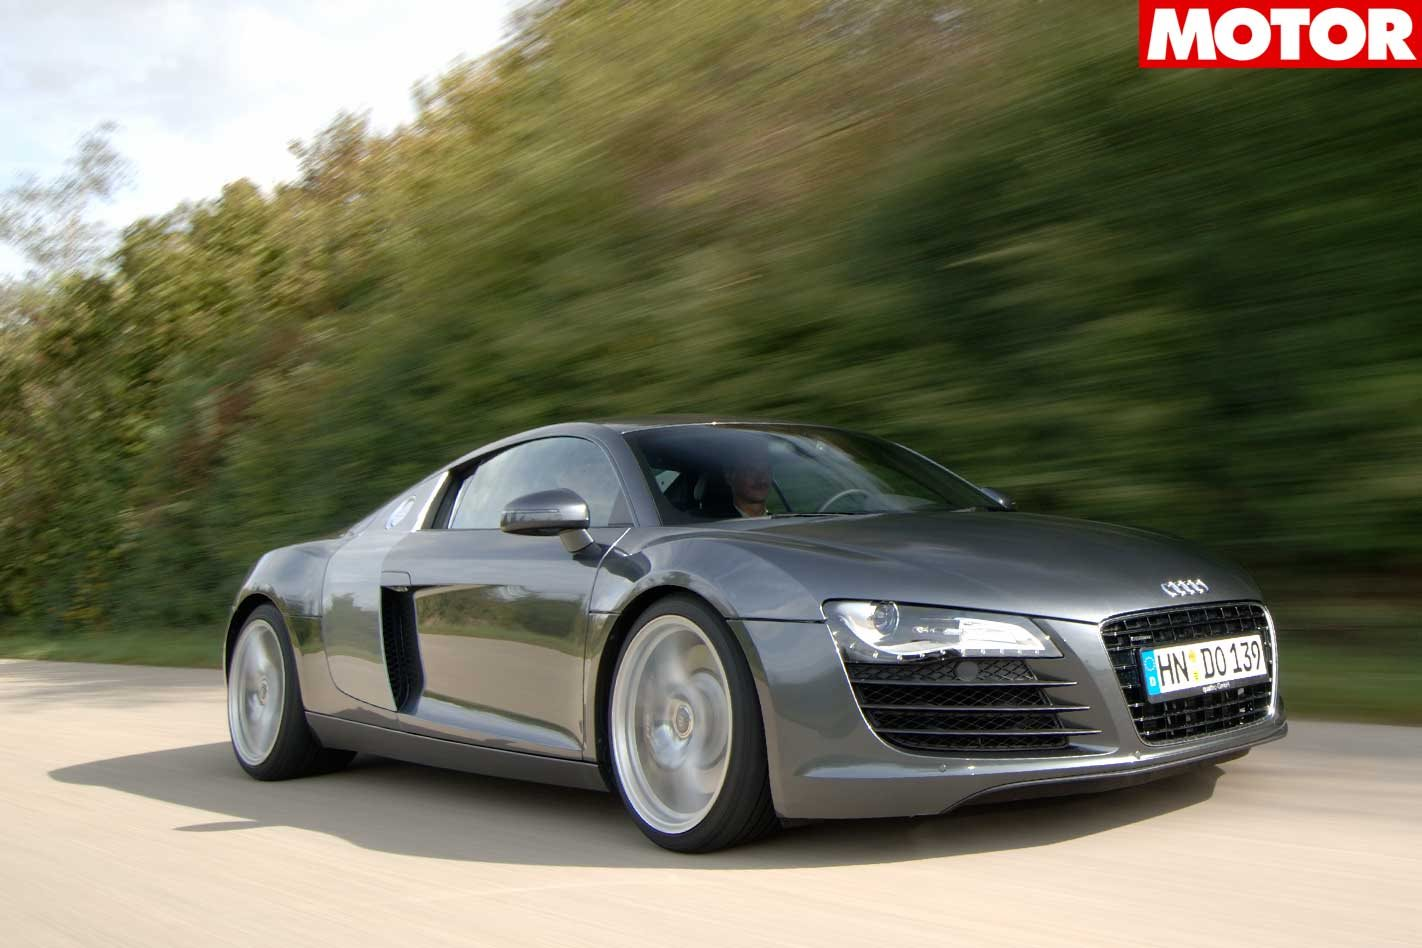 2007 Audi R8 V8 Review  Classic Motor